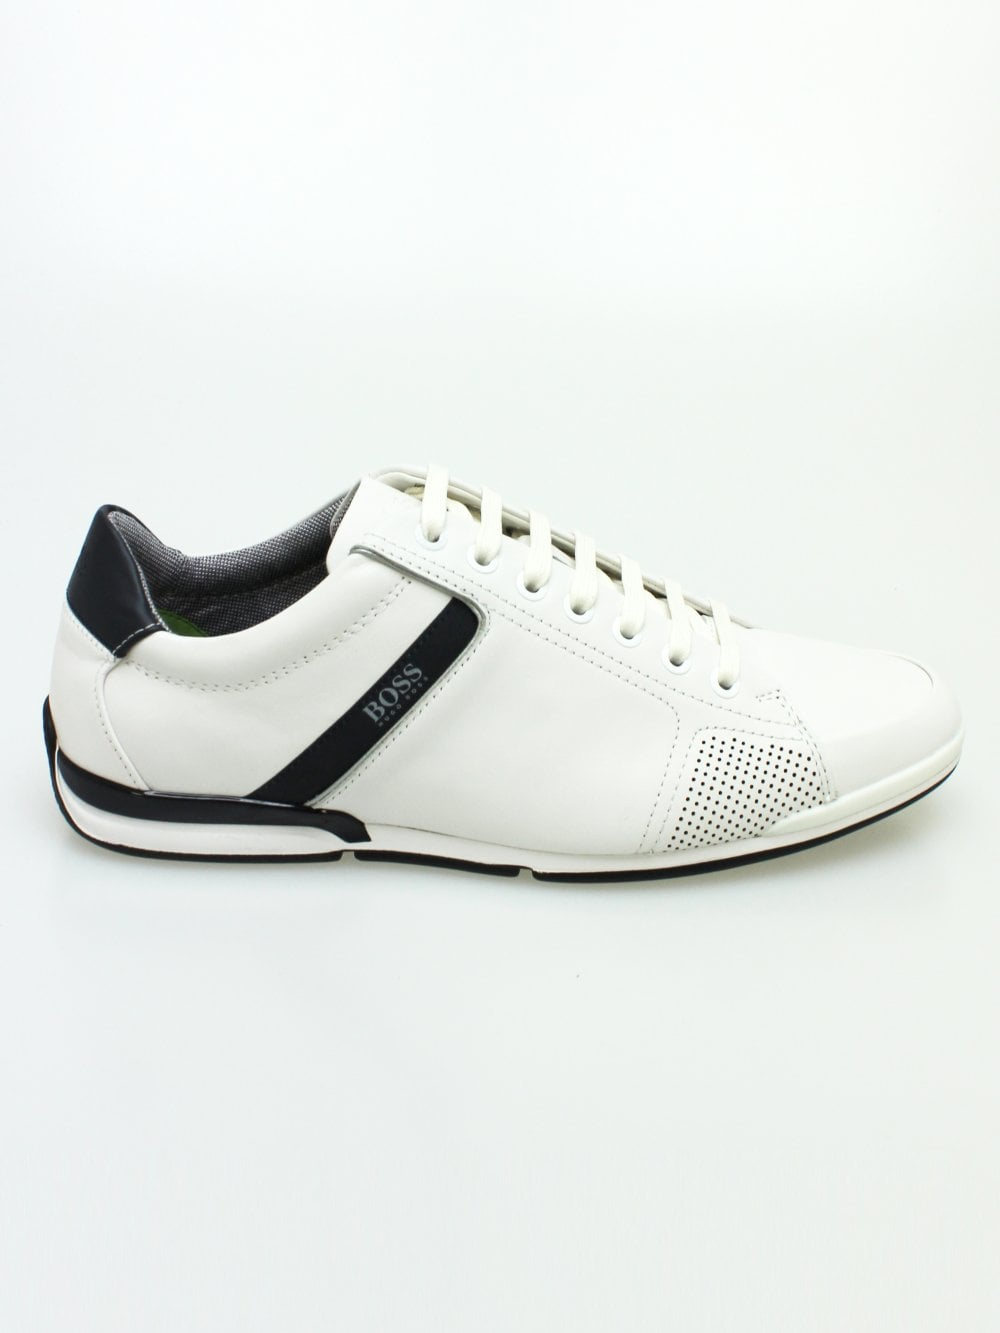 bf751ce46c Hugo Boss Athleisure Casual Low P LUX4 Trainers in White | Northern ...